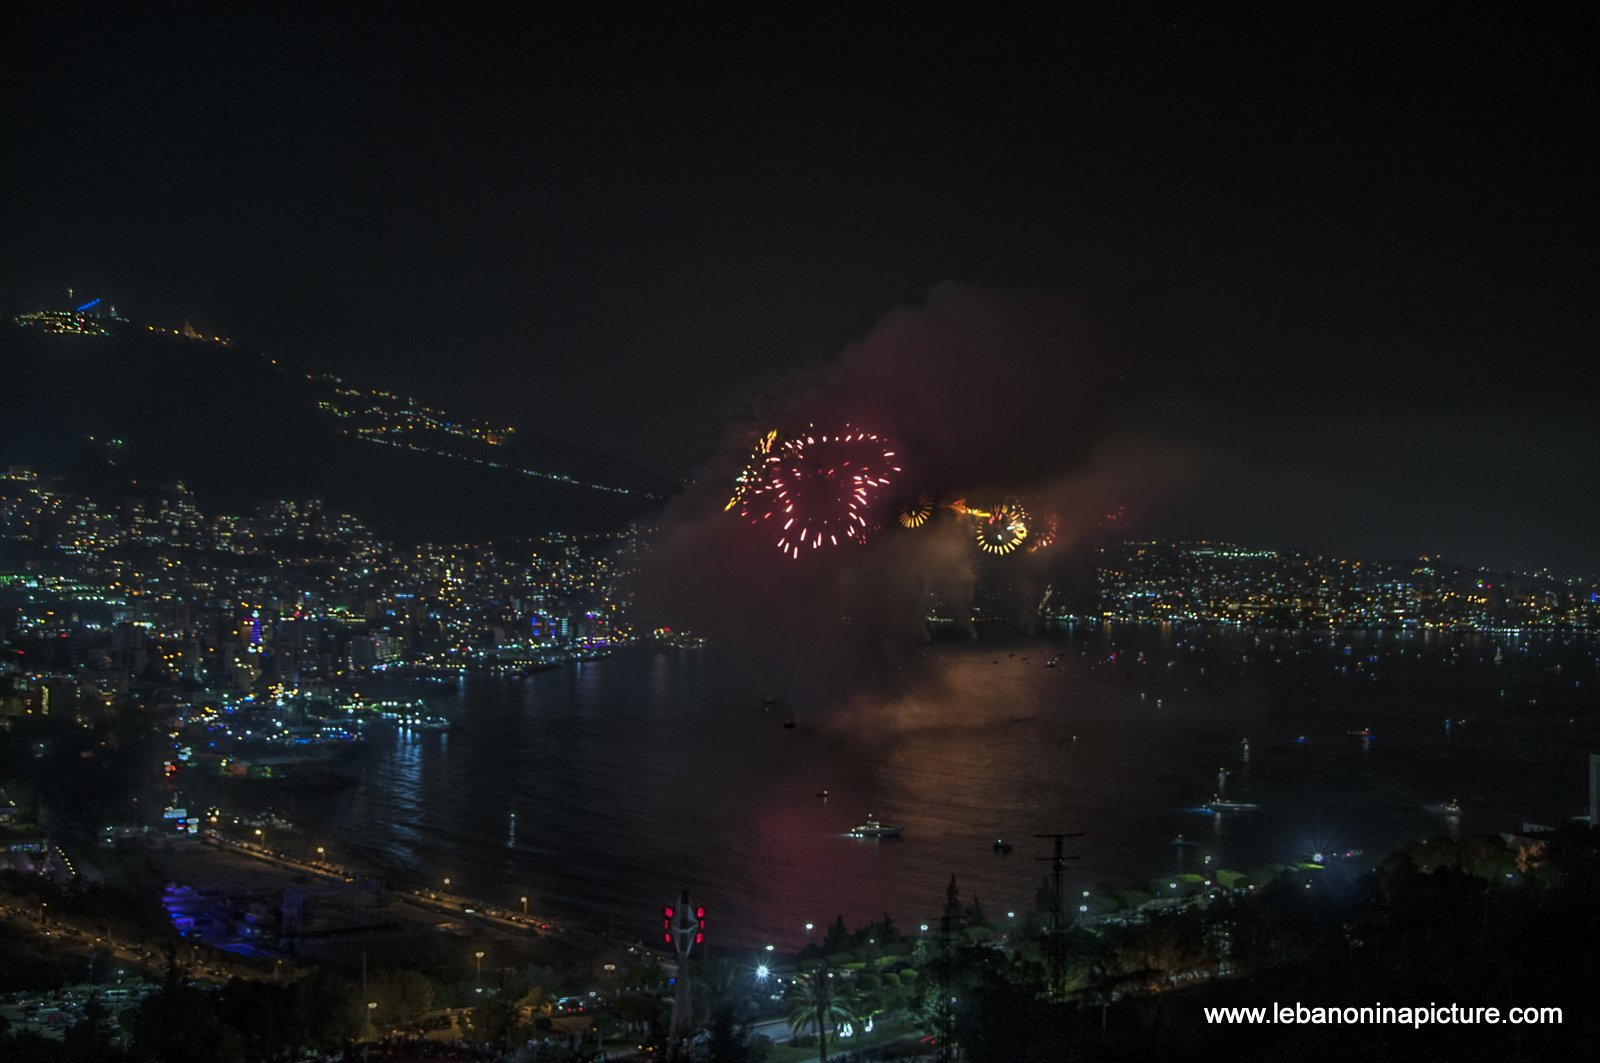 Jounieh Fireworks 2017 - Heart Shaped Fireworks, From Jounieh with Love and Happy Valentine's Day!